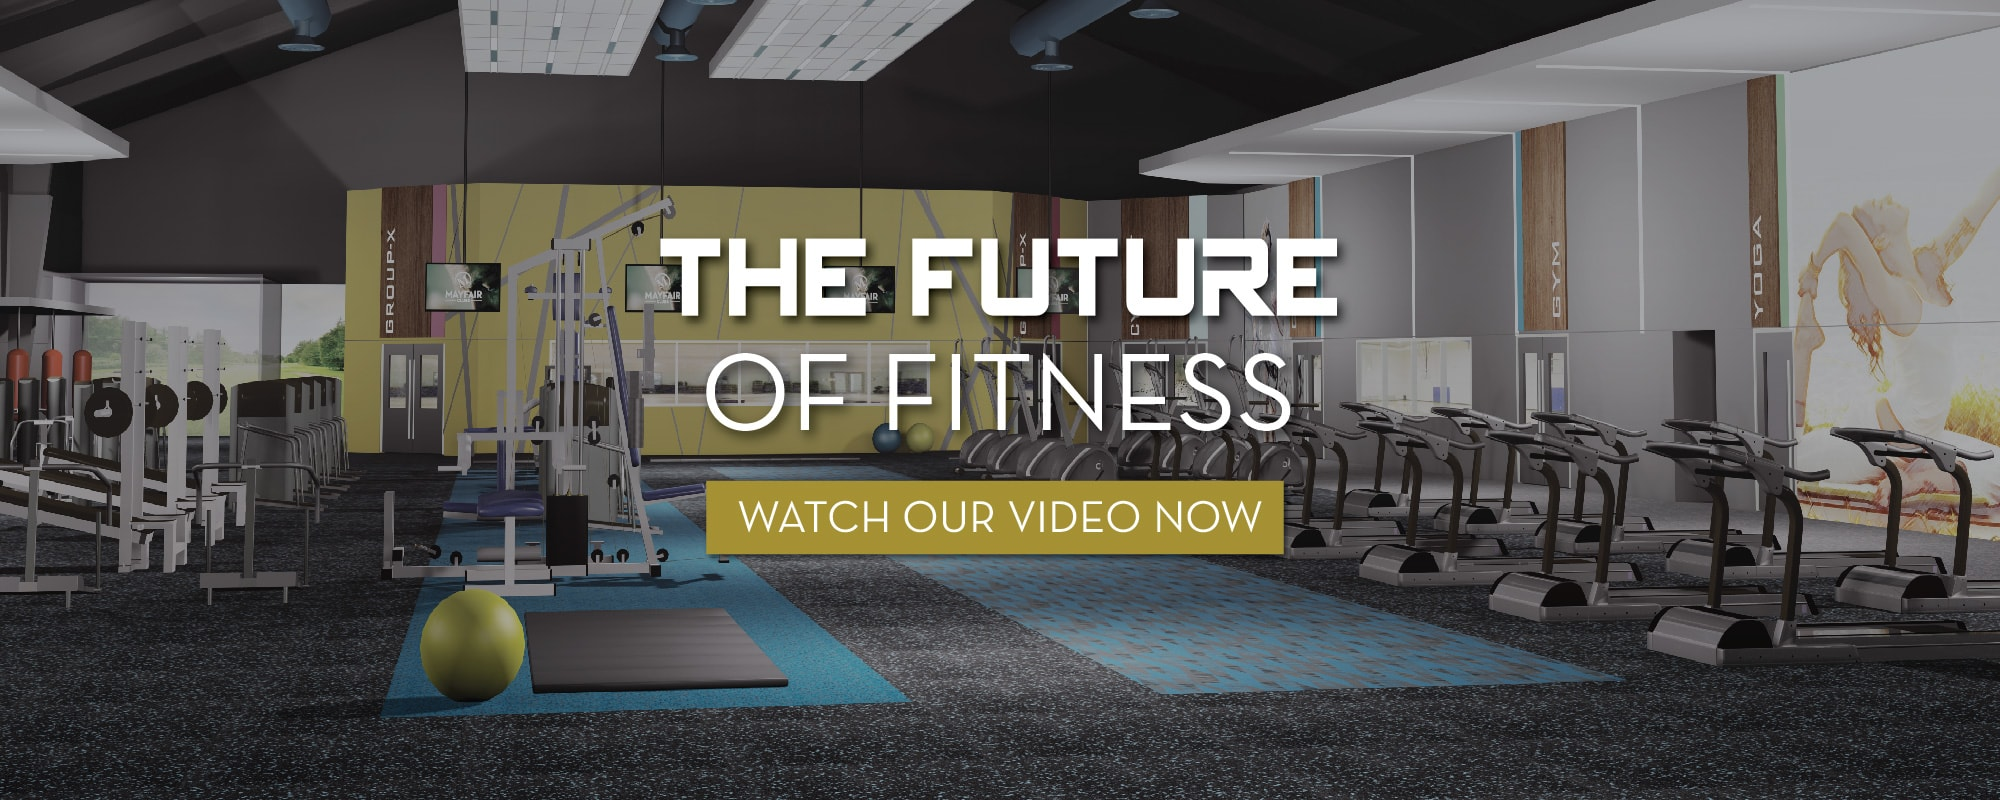 The future of fitness information video